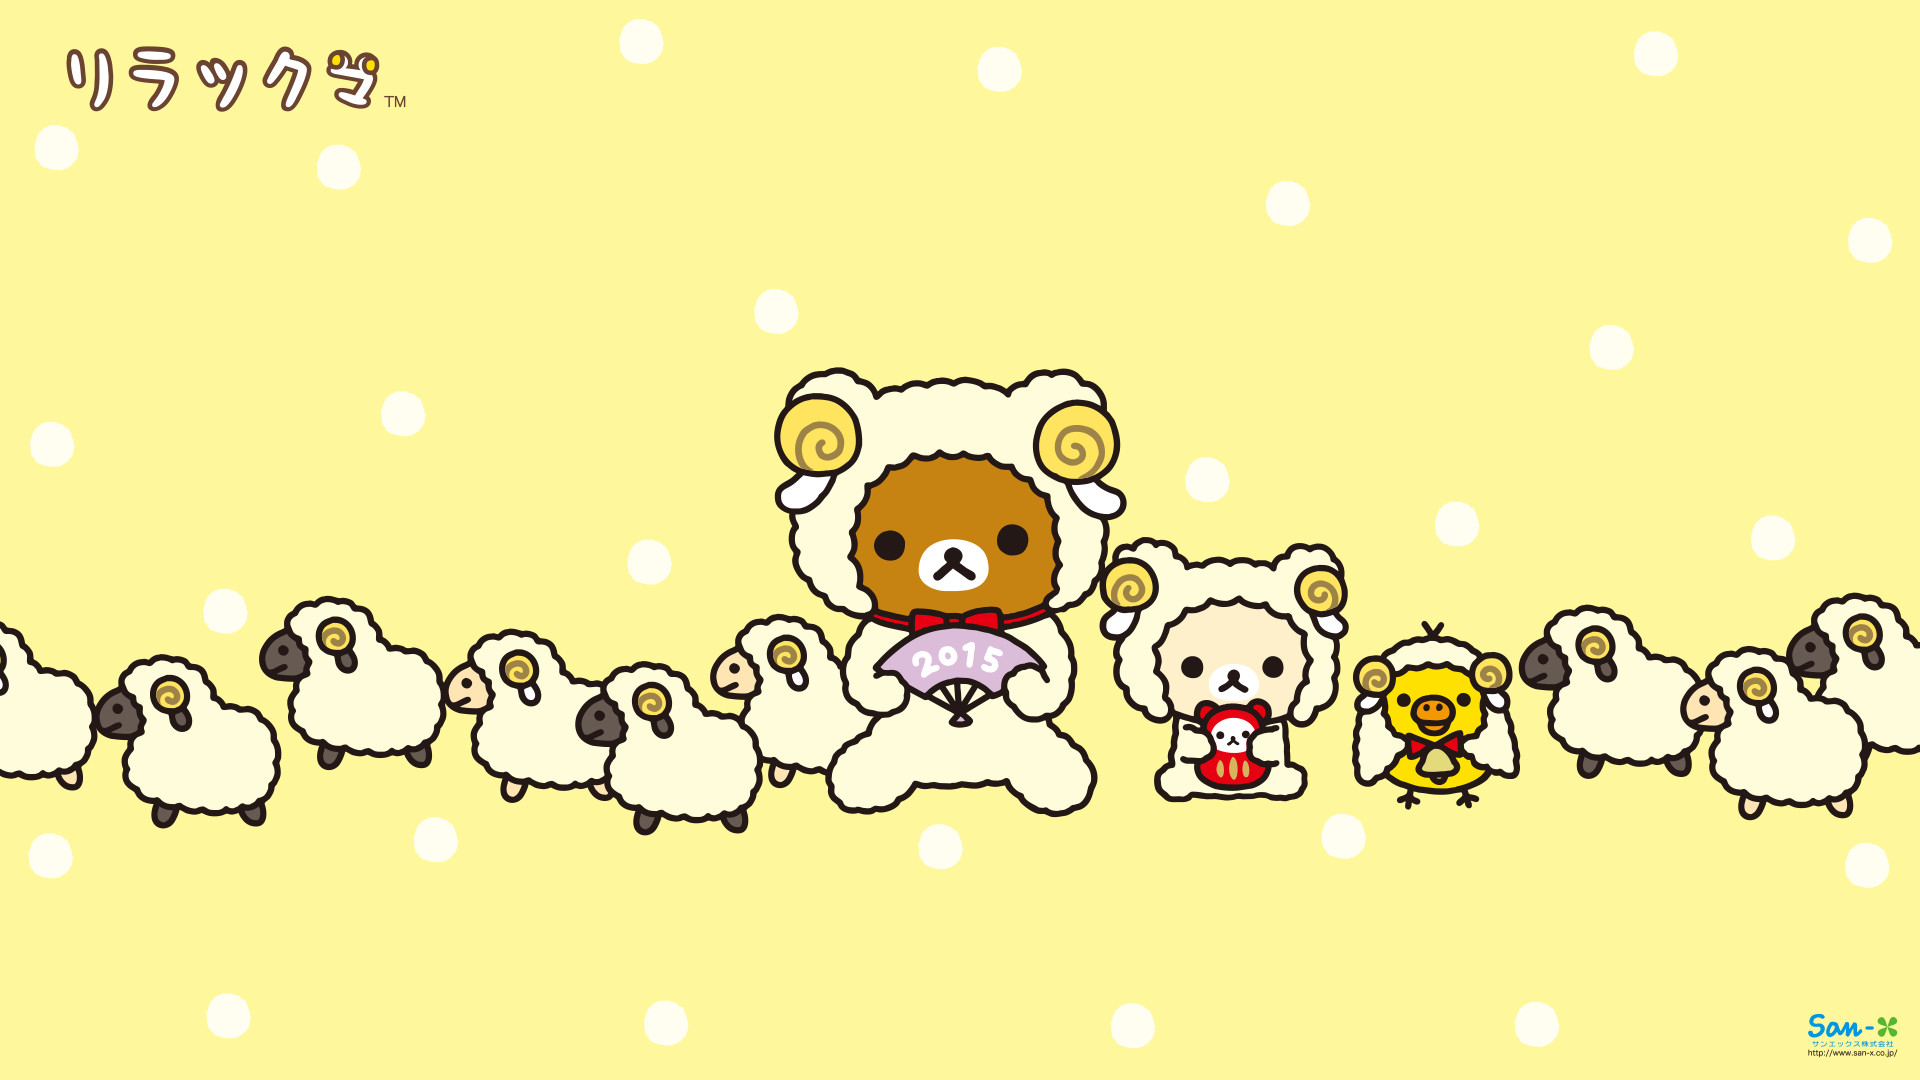 1920x1080 Happy Year of the Sheep - you can download this wallpaper for free